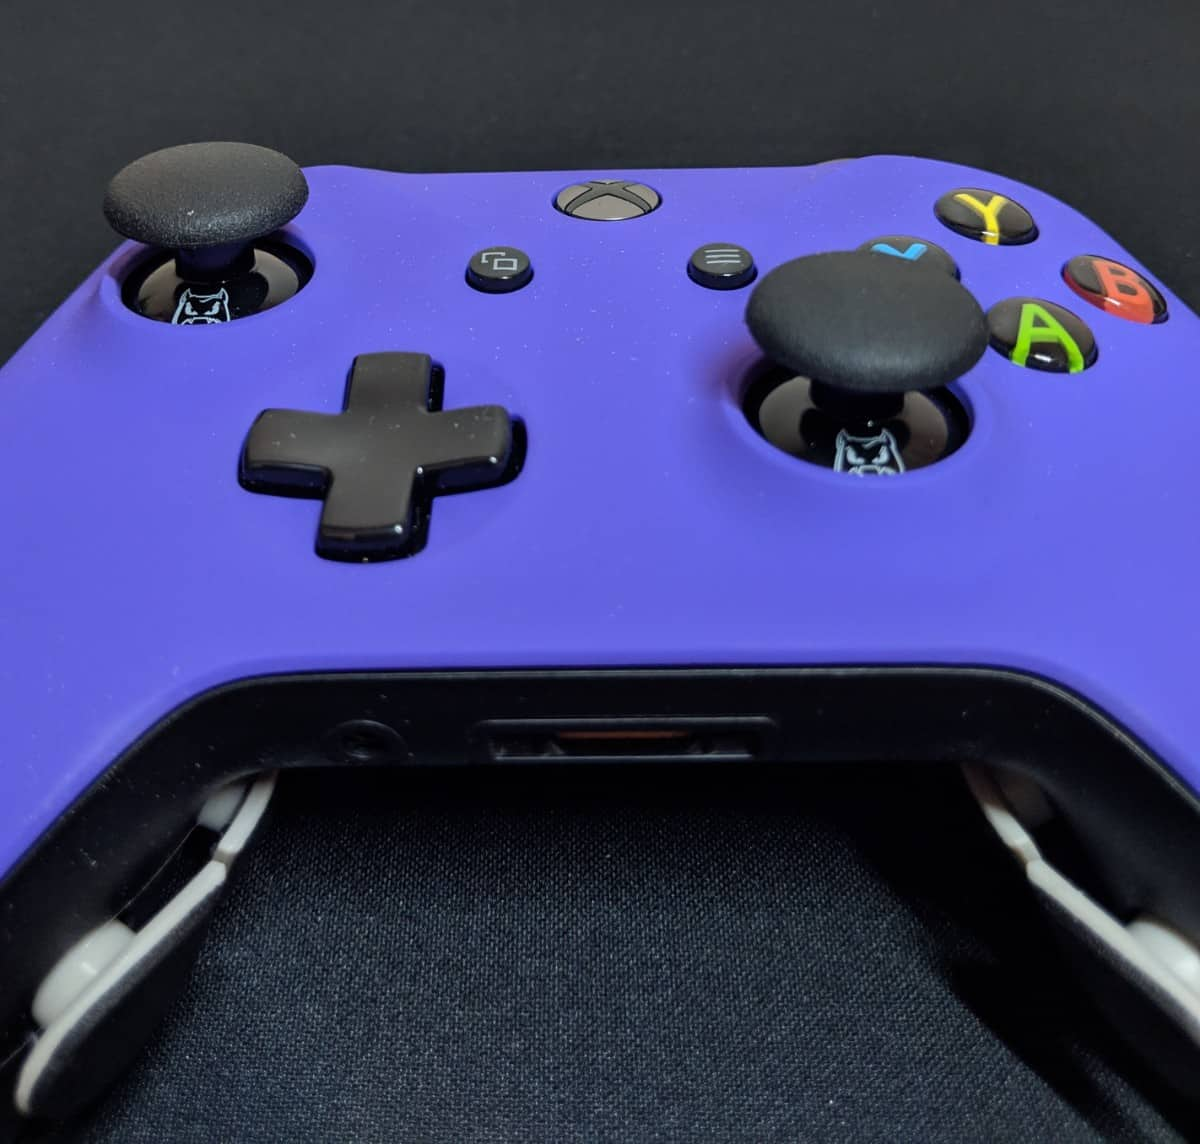 Evil-Xbox-one-v2-Photos-10 Evil Controllers PS4 and Xbox One Controller Review